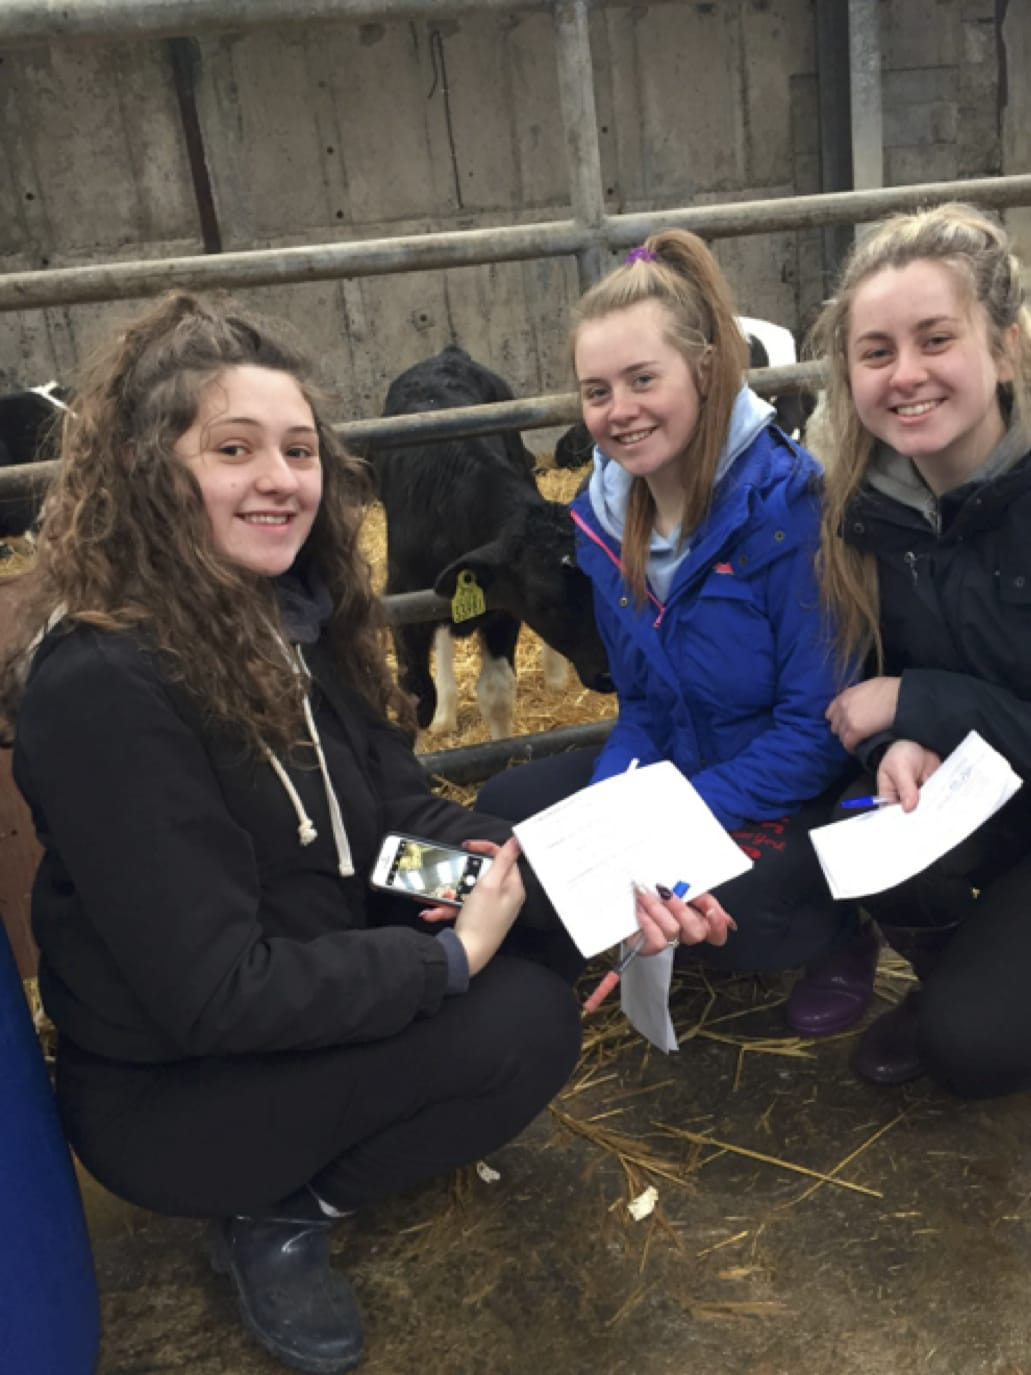 March 2017: Muireann Tobin, Caoimhe Danaher and Leah Barry take note on the Breeds of Animals used in Pallaskenry Agricultural College